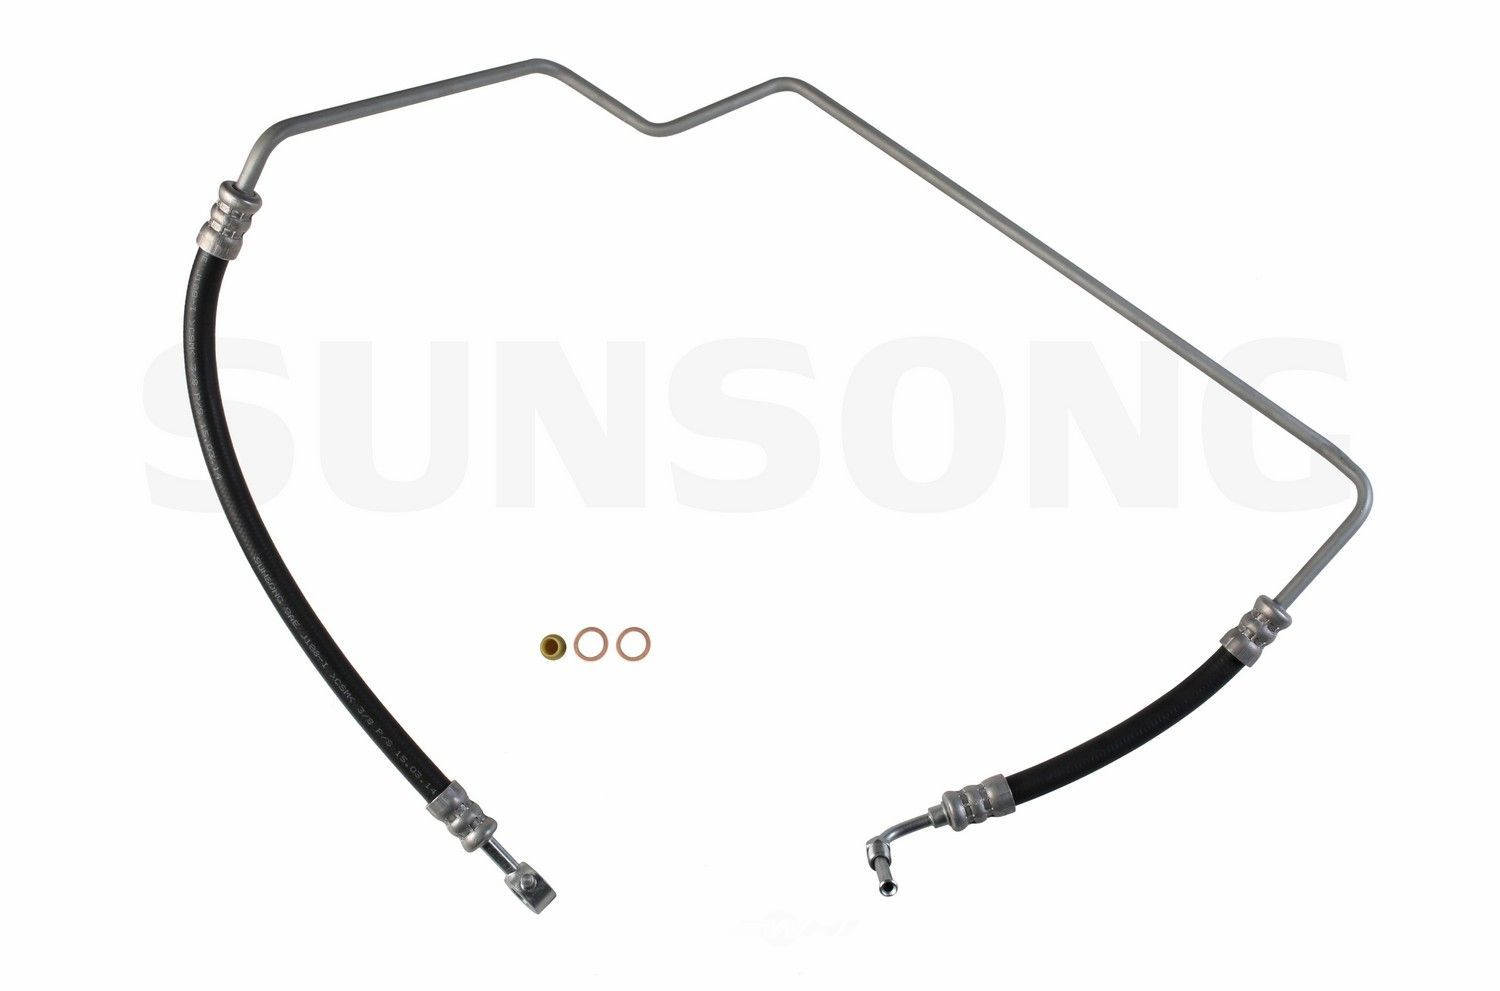 Power Steering Pressure Line Hose Assembly Fits 99 04 Nissan Frontier